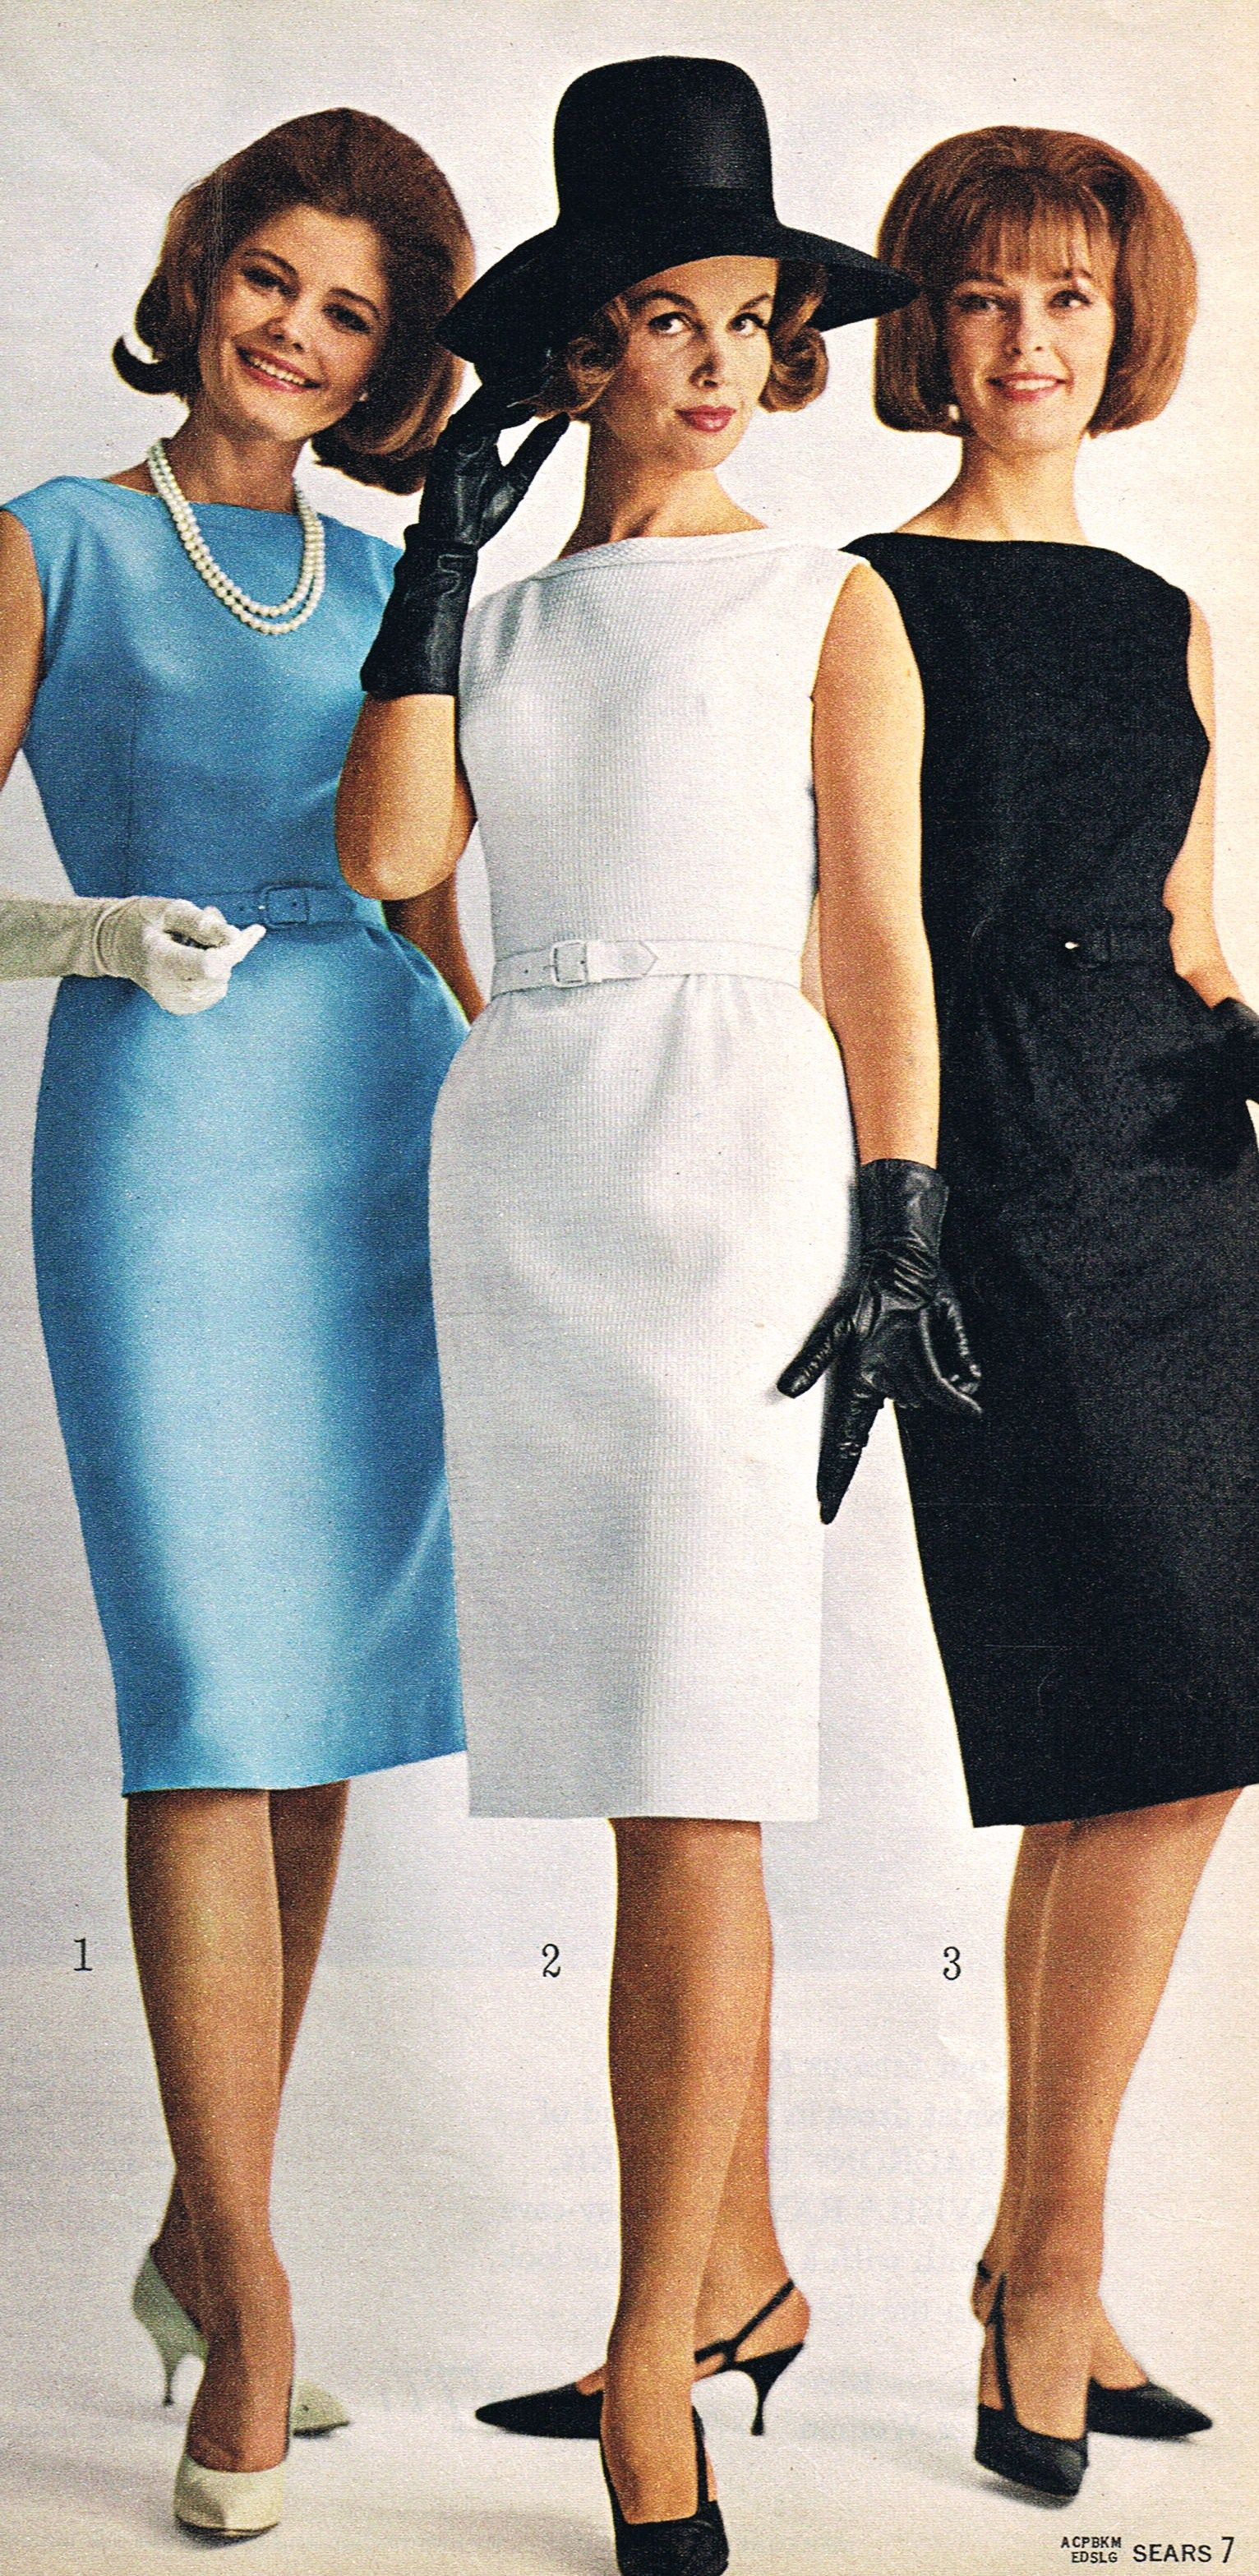 Sears 1964 vintage fashion style color photo print ad models magazine sheath dress wiggle blue Fashion style and mode facebook